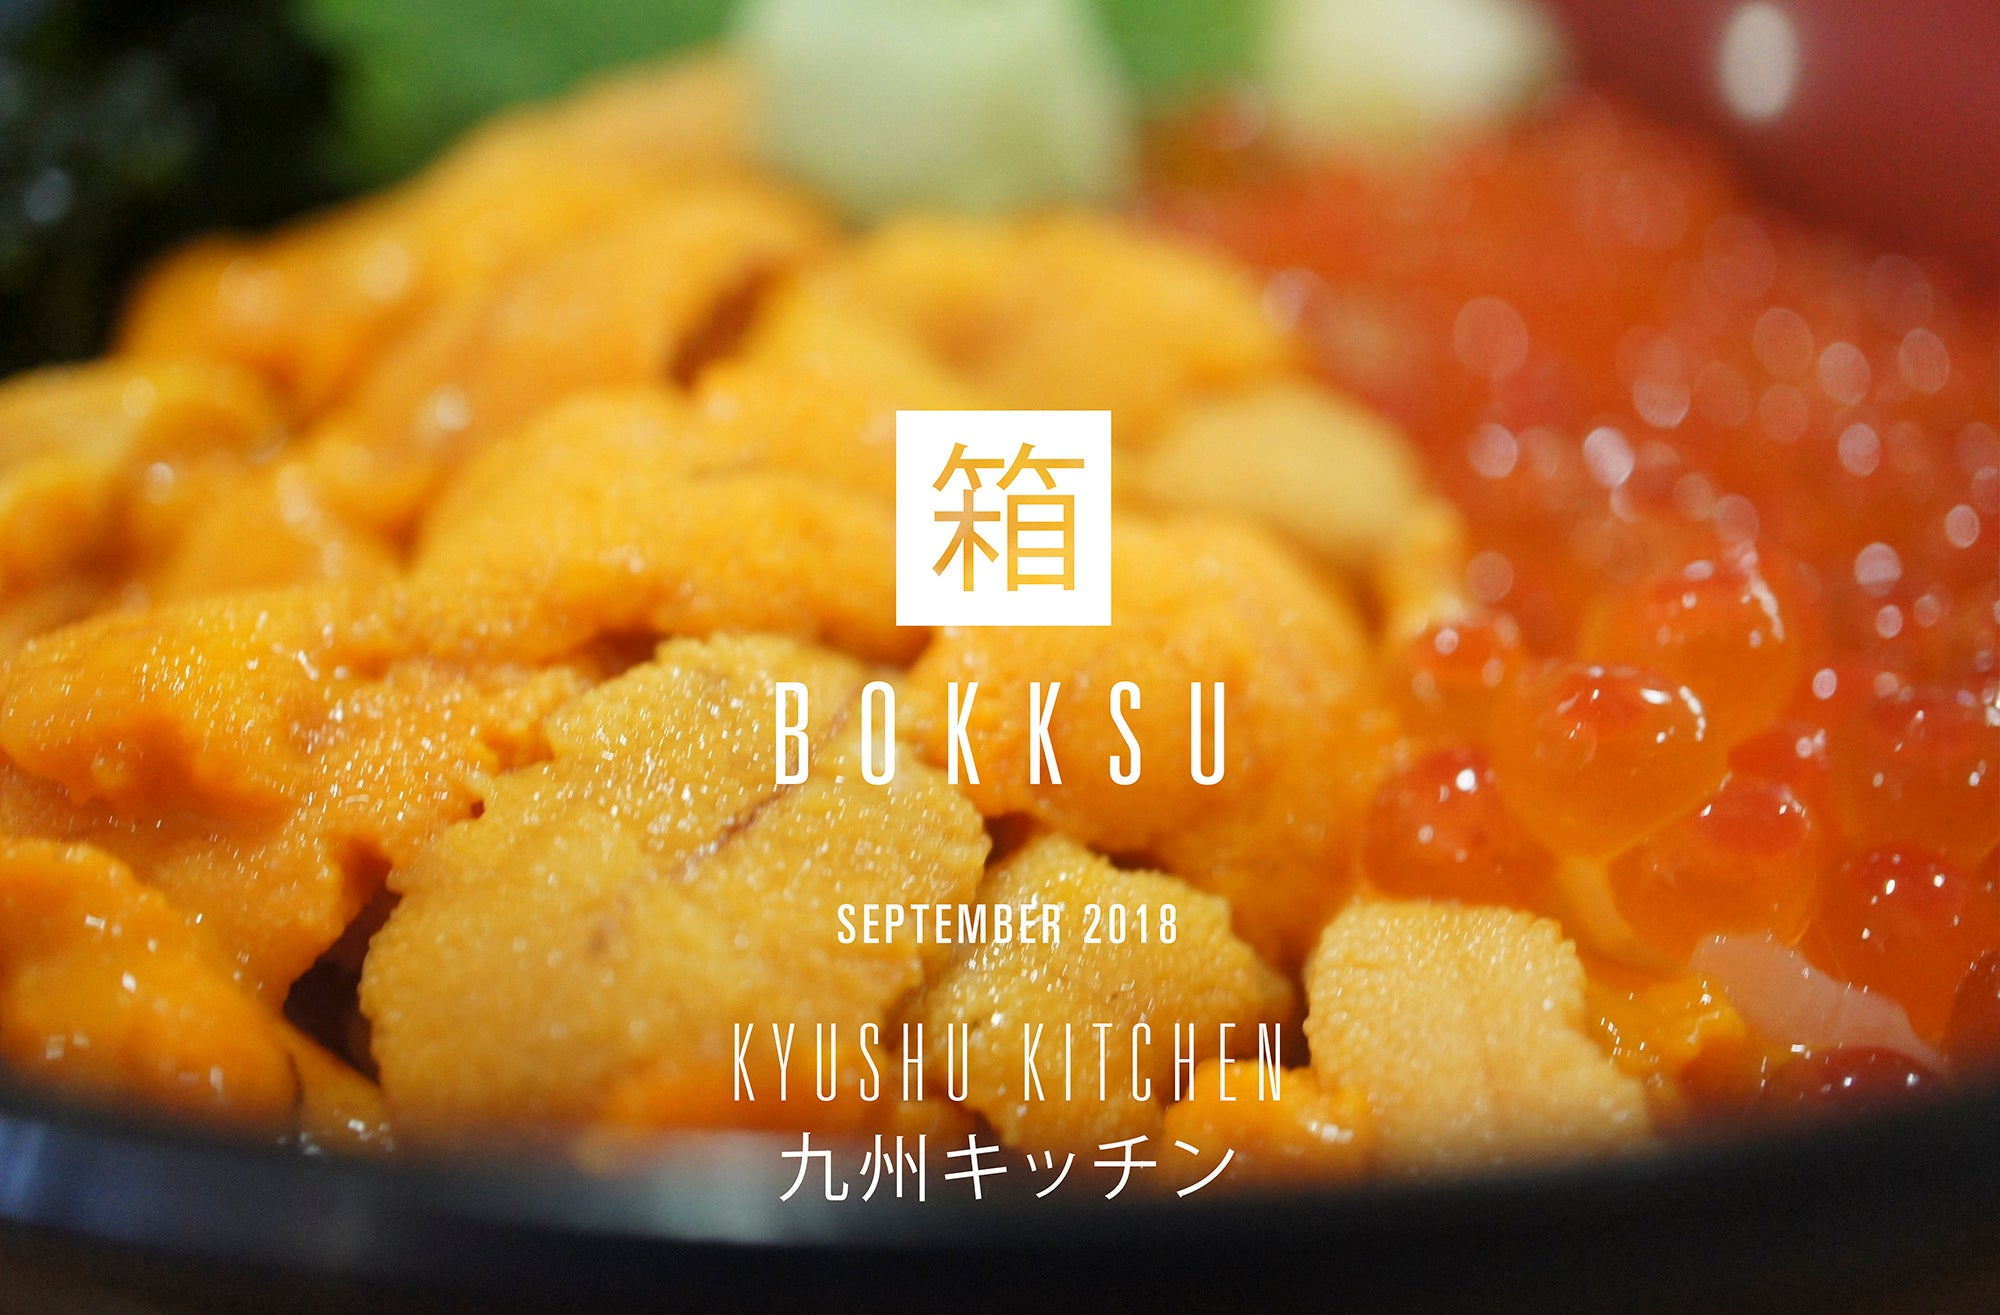 September2018 Kyushu Kitchen Bokksu